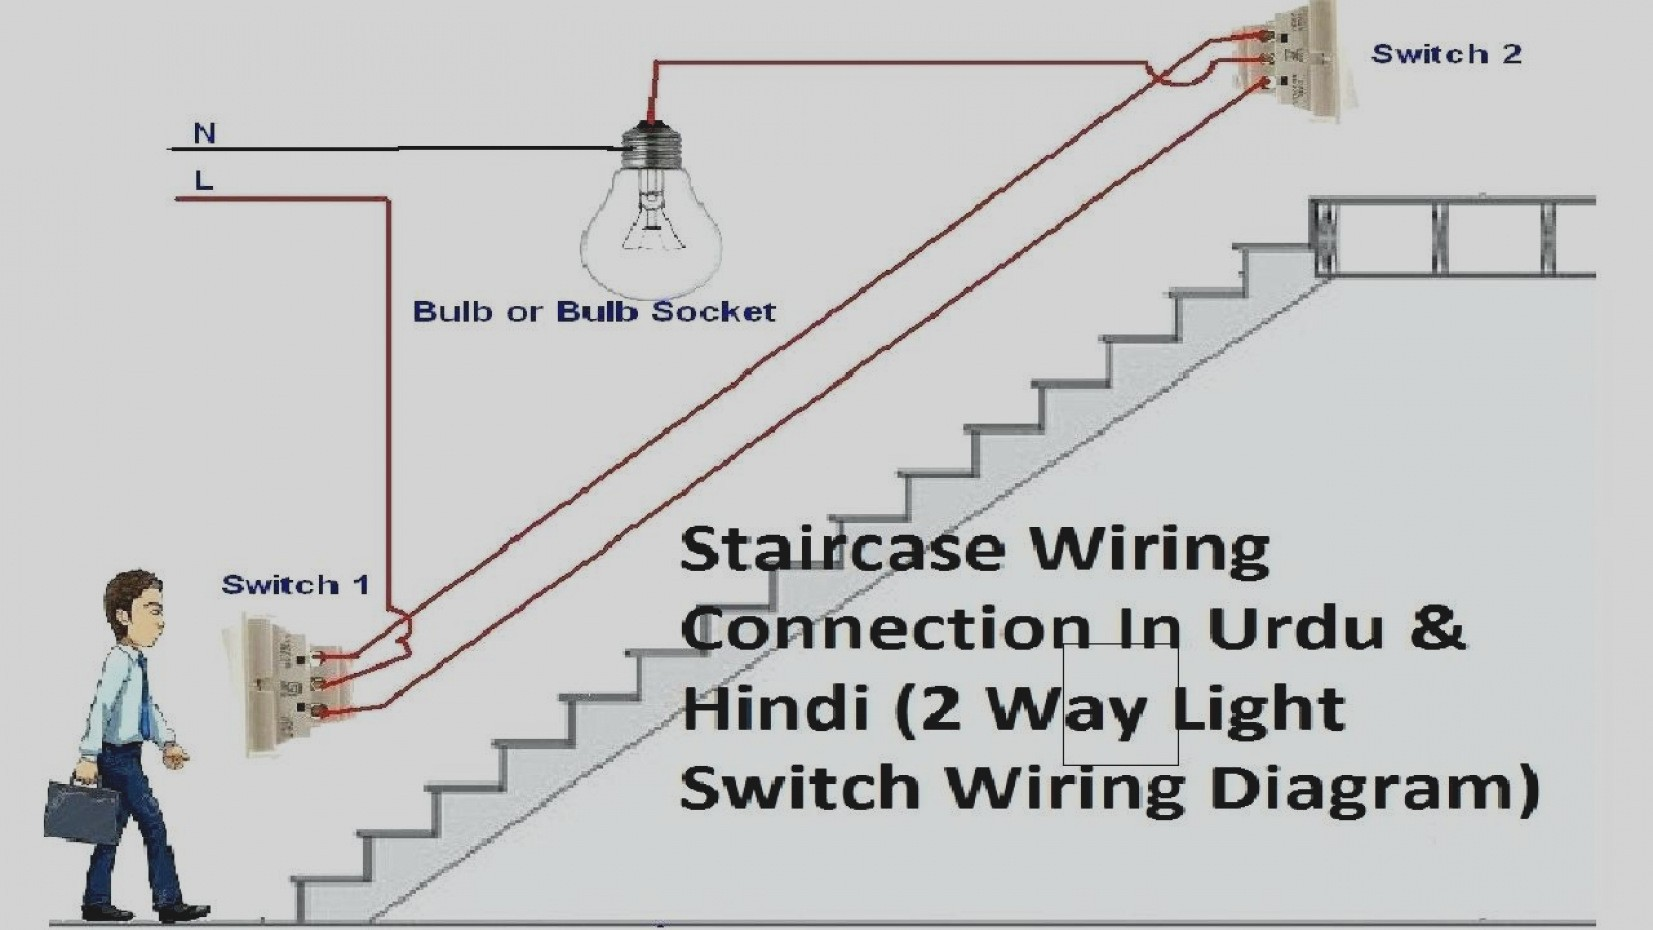 Light switch wiring instructions free car wiring diagrams 2 way light switch wiring instructions inspirational wiring rh mainetreasurechest com wemo light switch installation instructions wemo light switch wiring asfbconference2016 Choice Image